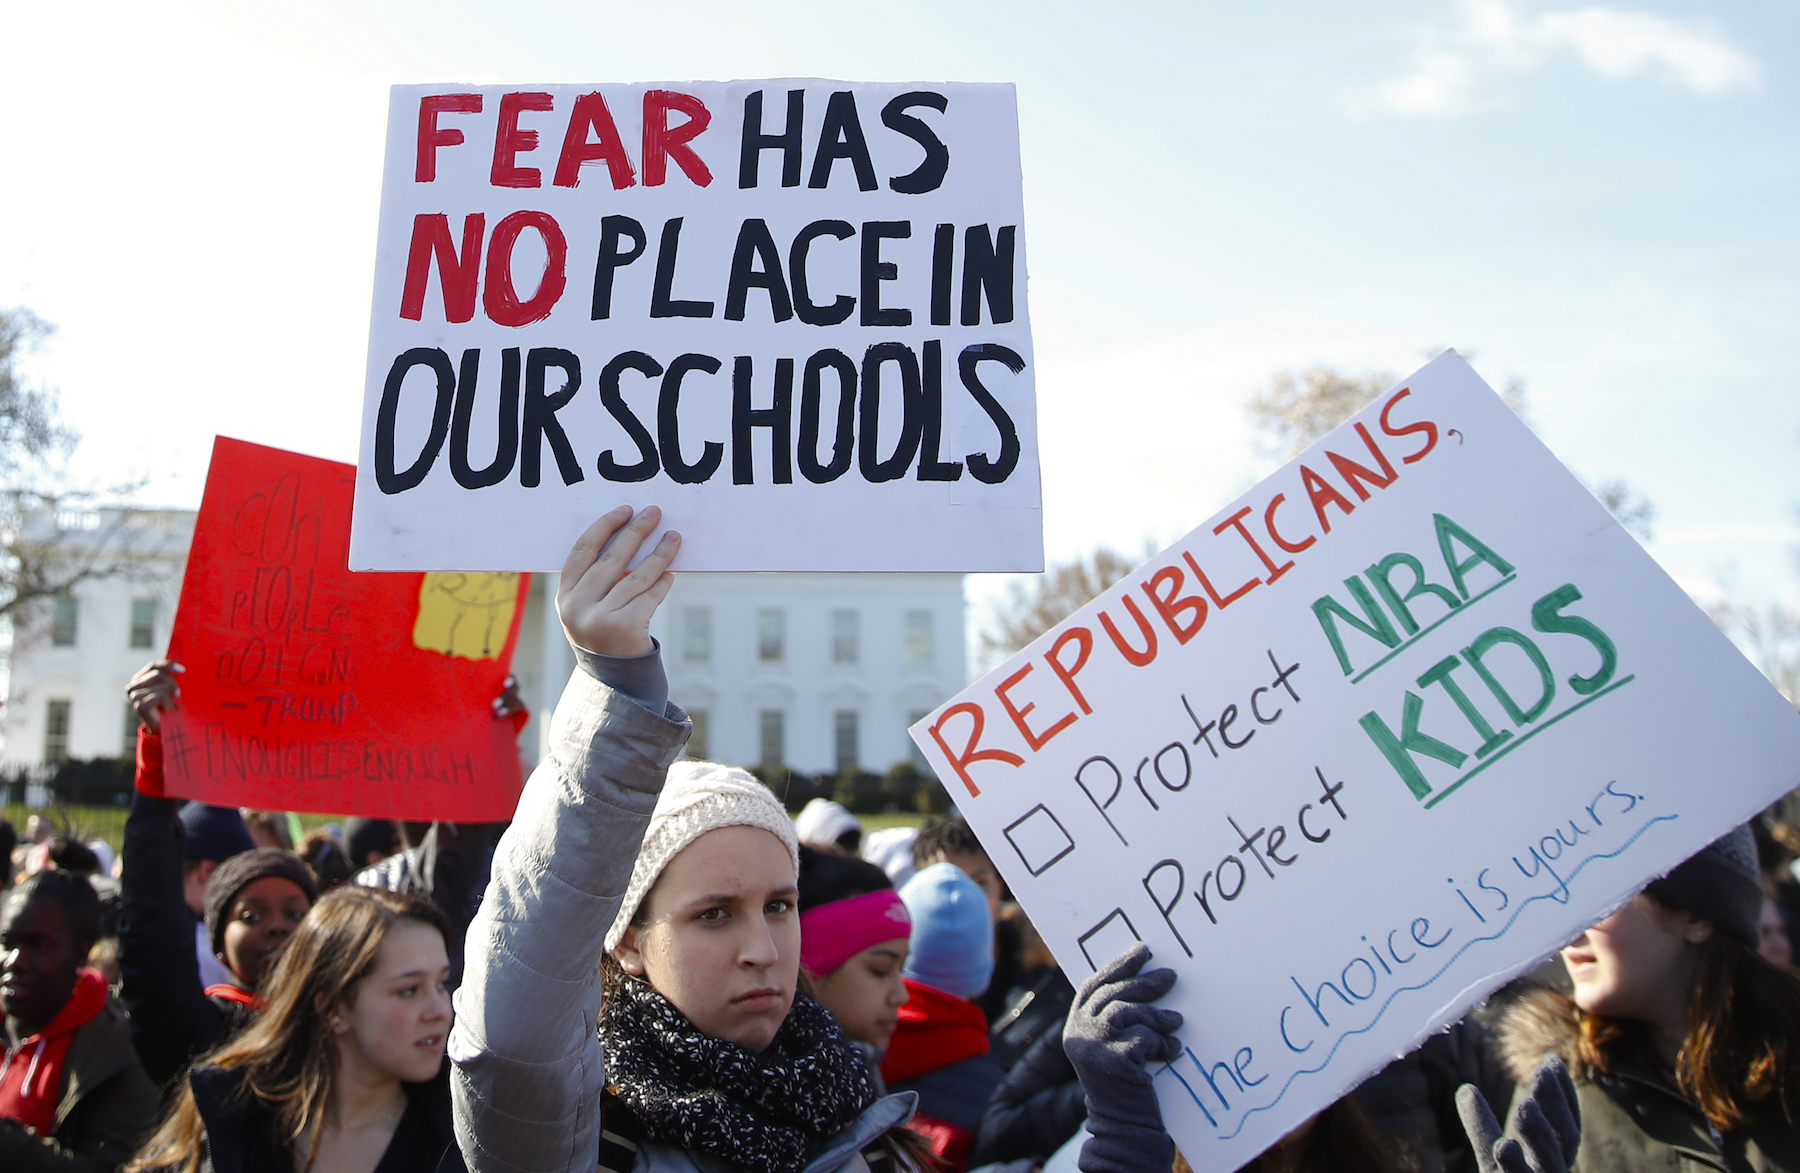 <div class='meta'><div class='origin-logo' data-origin='AP'></div><span class='caption-text' data-credit='AP Photo/Carolyn Kaster'>Students Rally in front of the White House in Washington, Wednesday, March 14, 2018.</span></div>